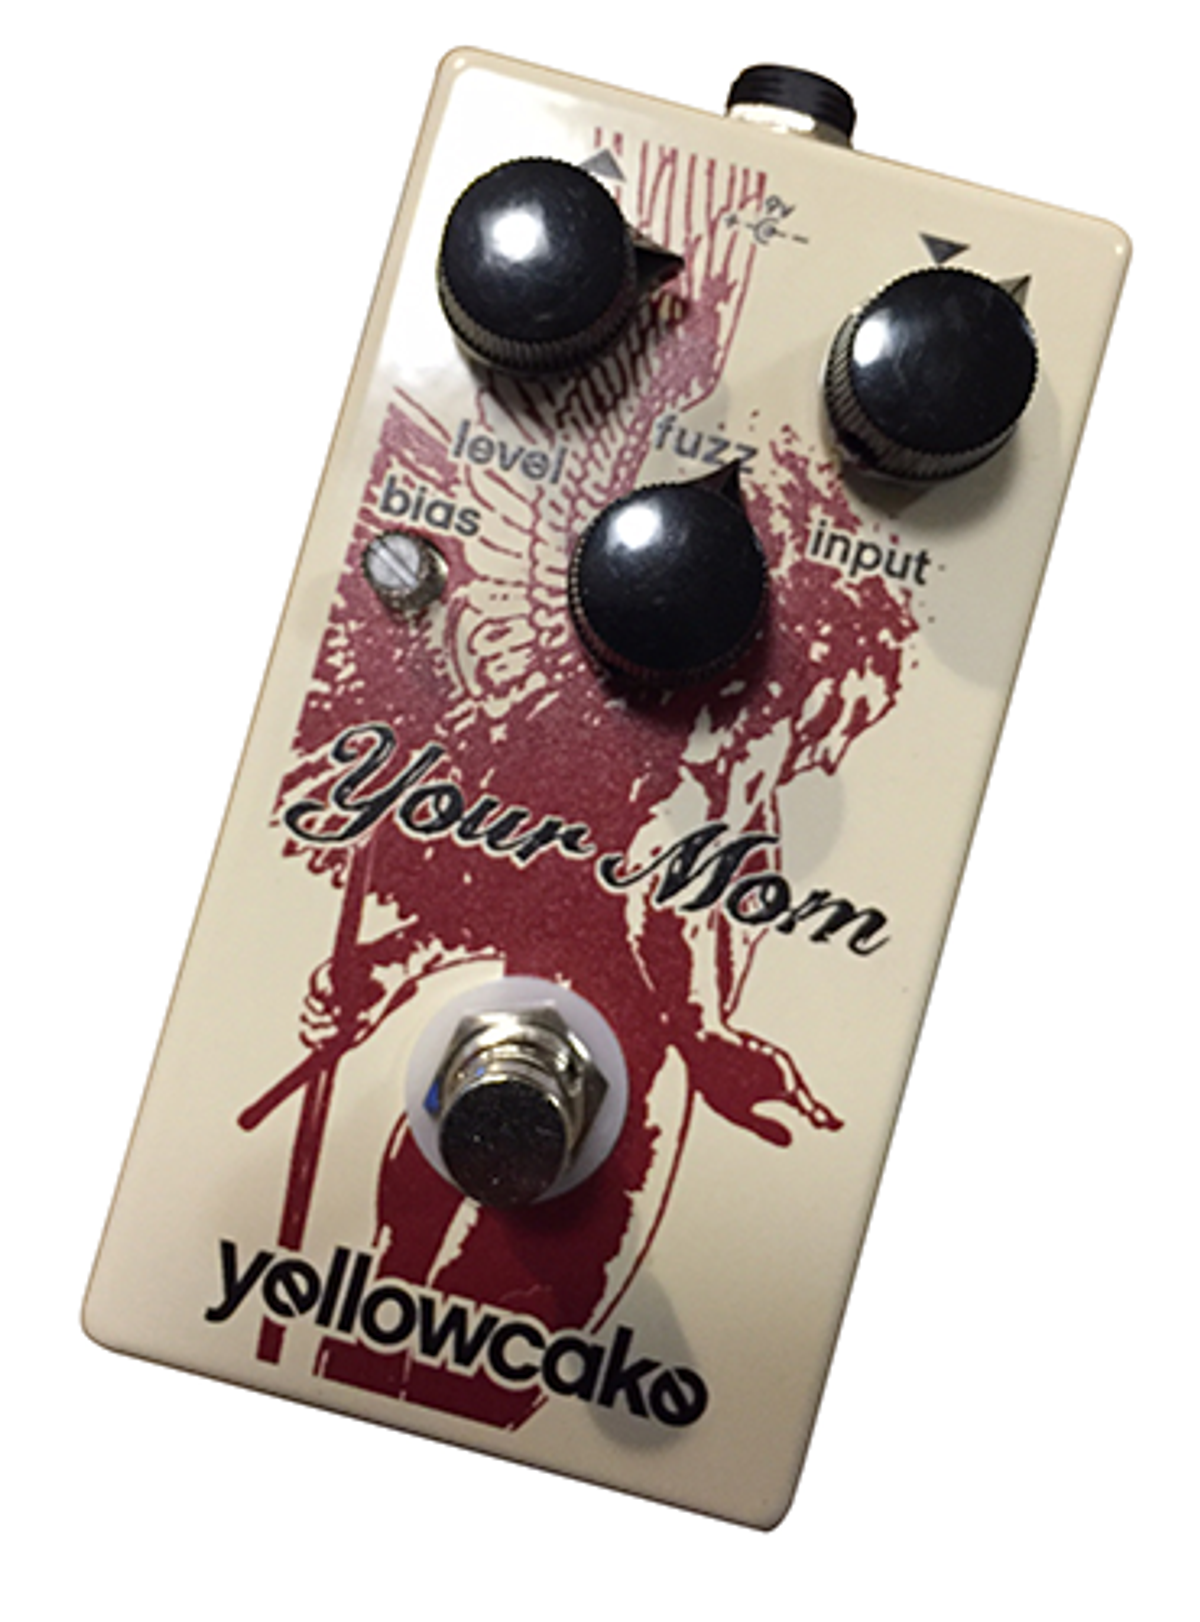 Yellowcake Releases Your Mom